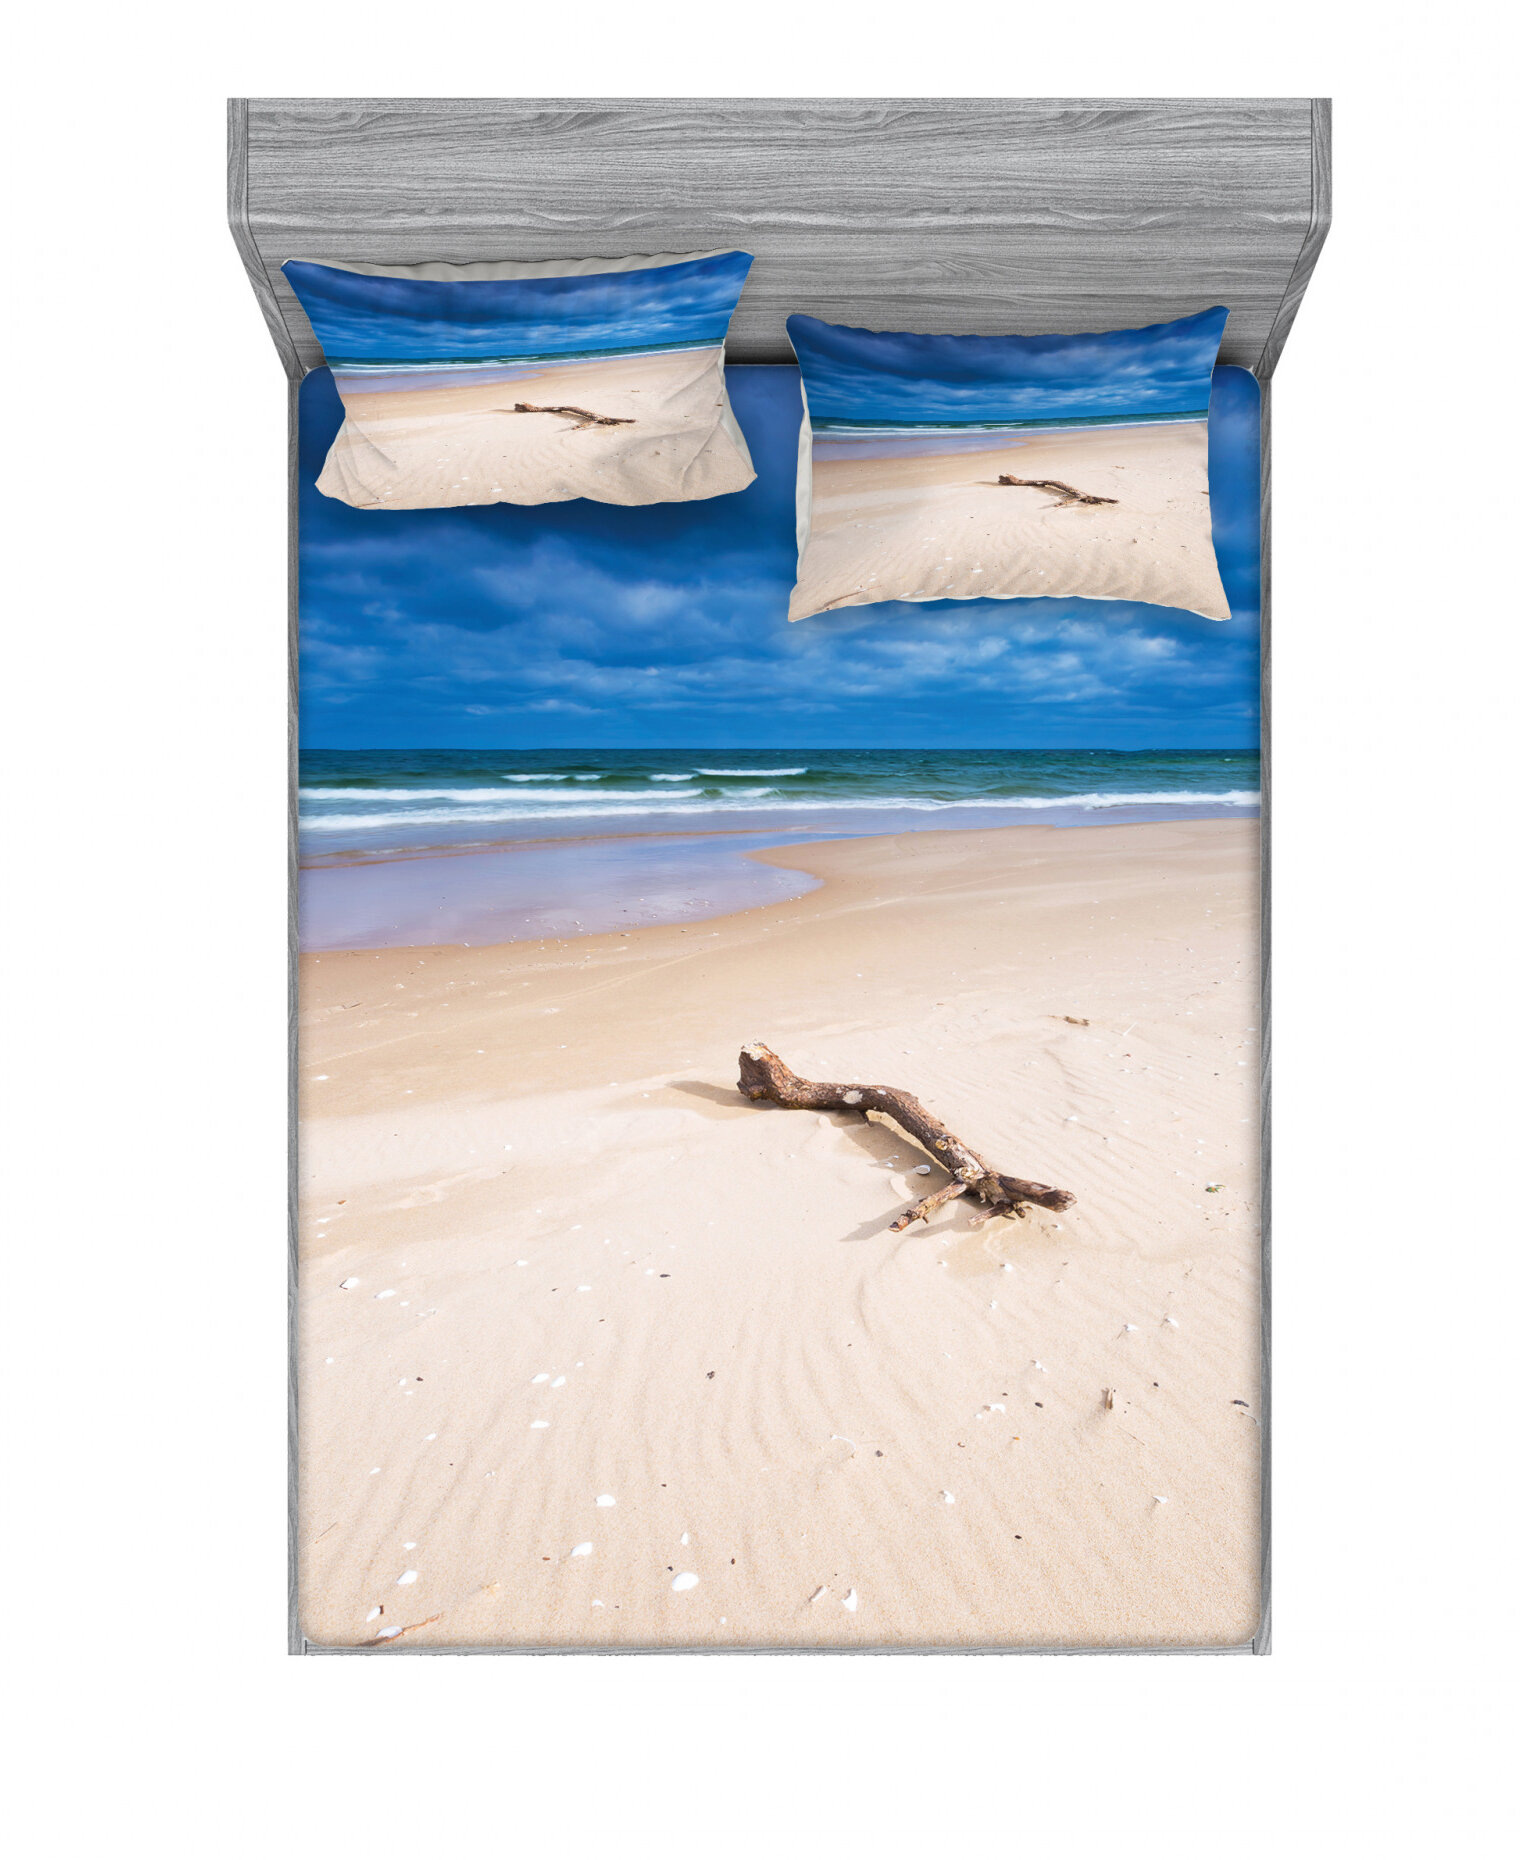 East Urban Home Driftwood On The Deserted Sandy Beach And The Cloudy Sky Image Sheet Set Wayfair